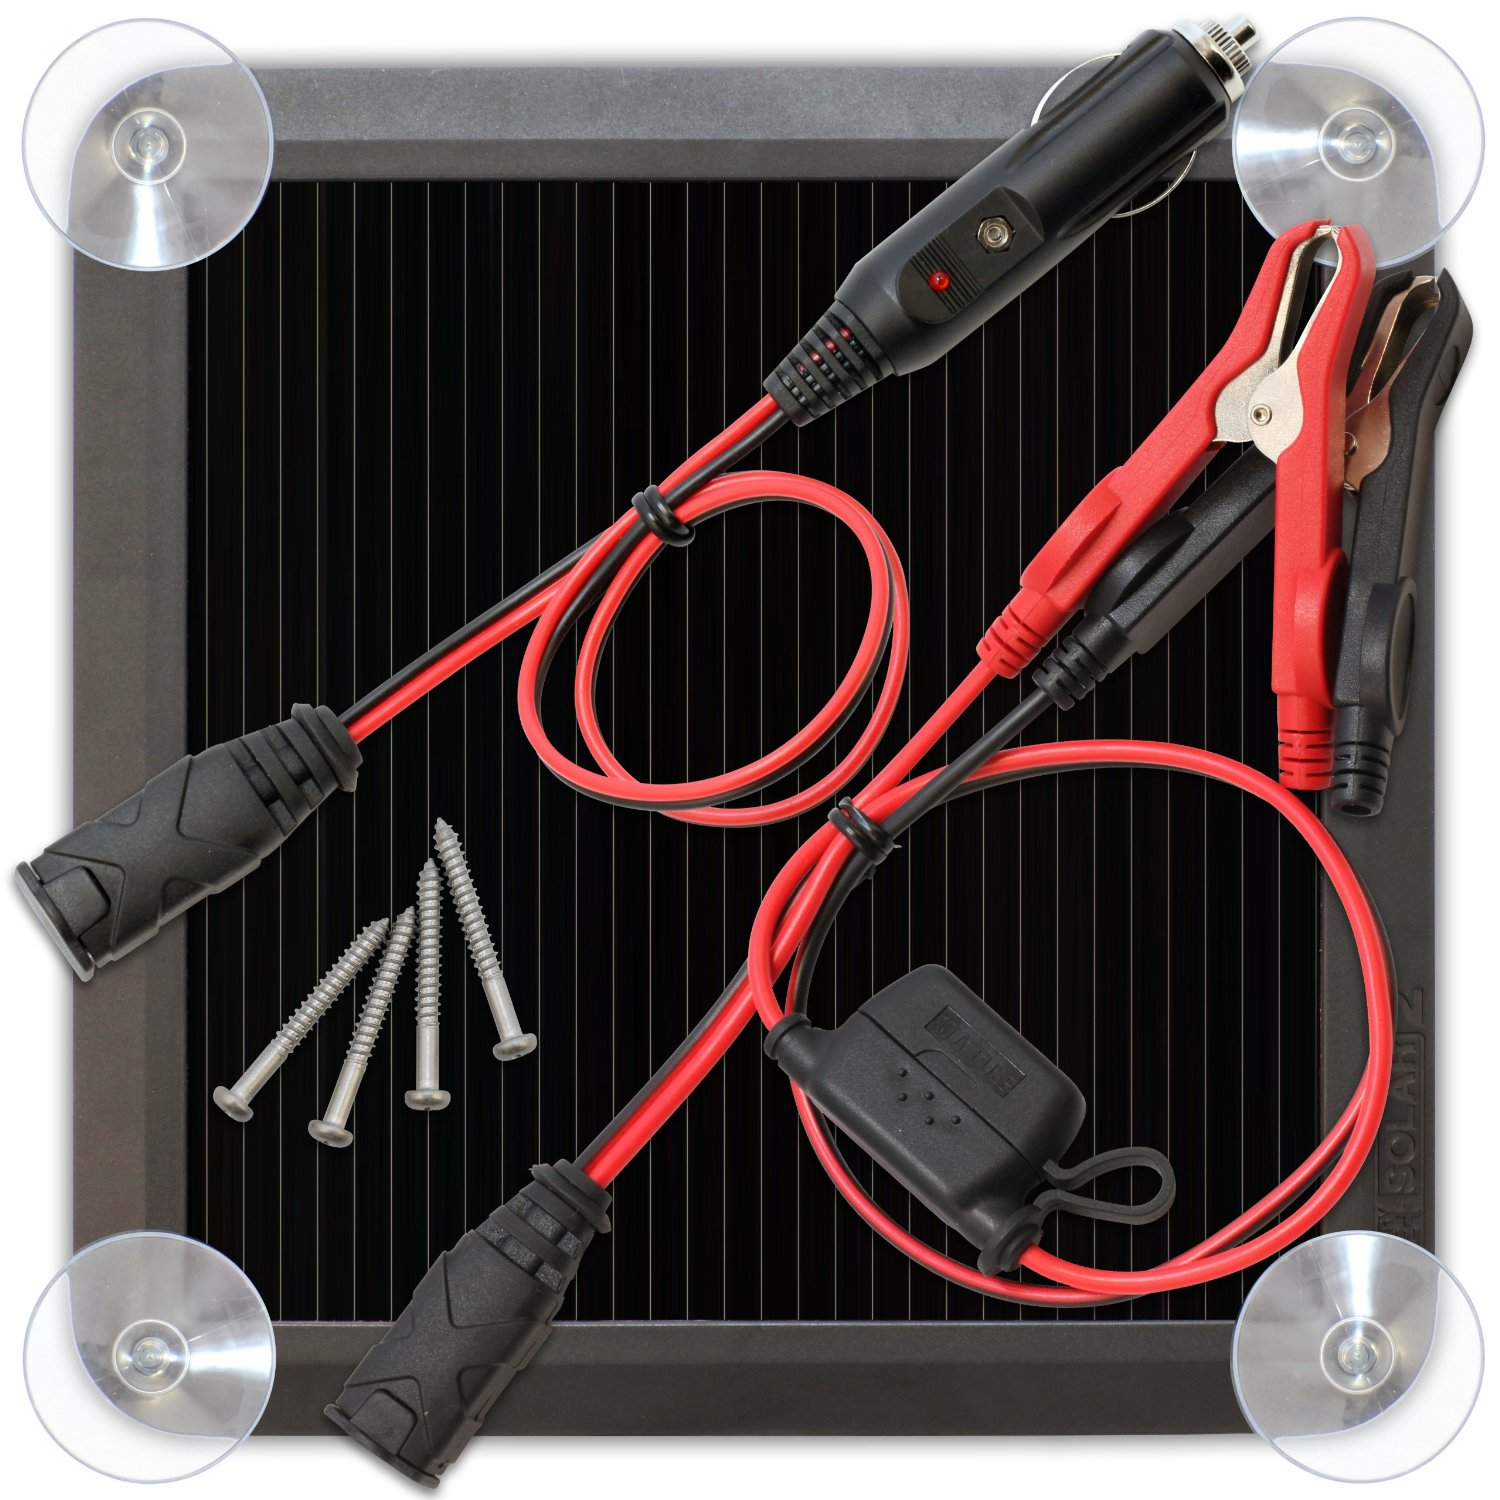 *NLA* 2.5W SOLAR BATTERY CHARGER AND MAINTAINER